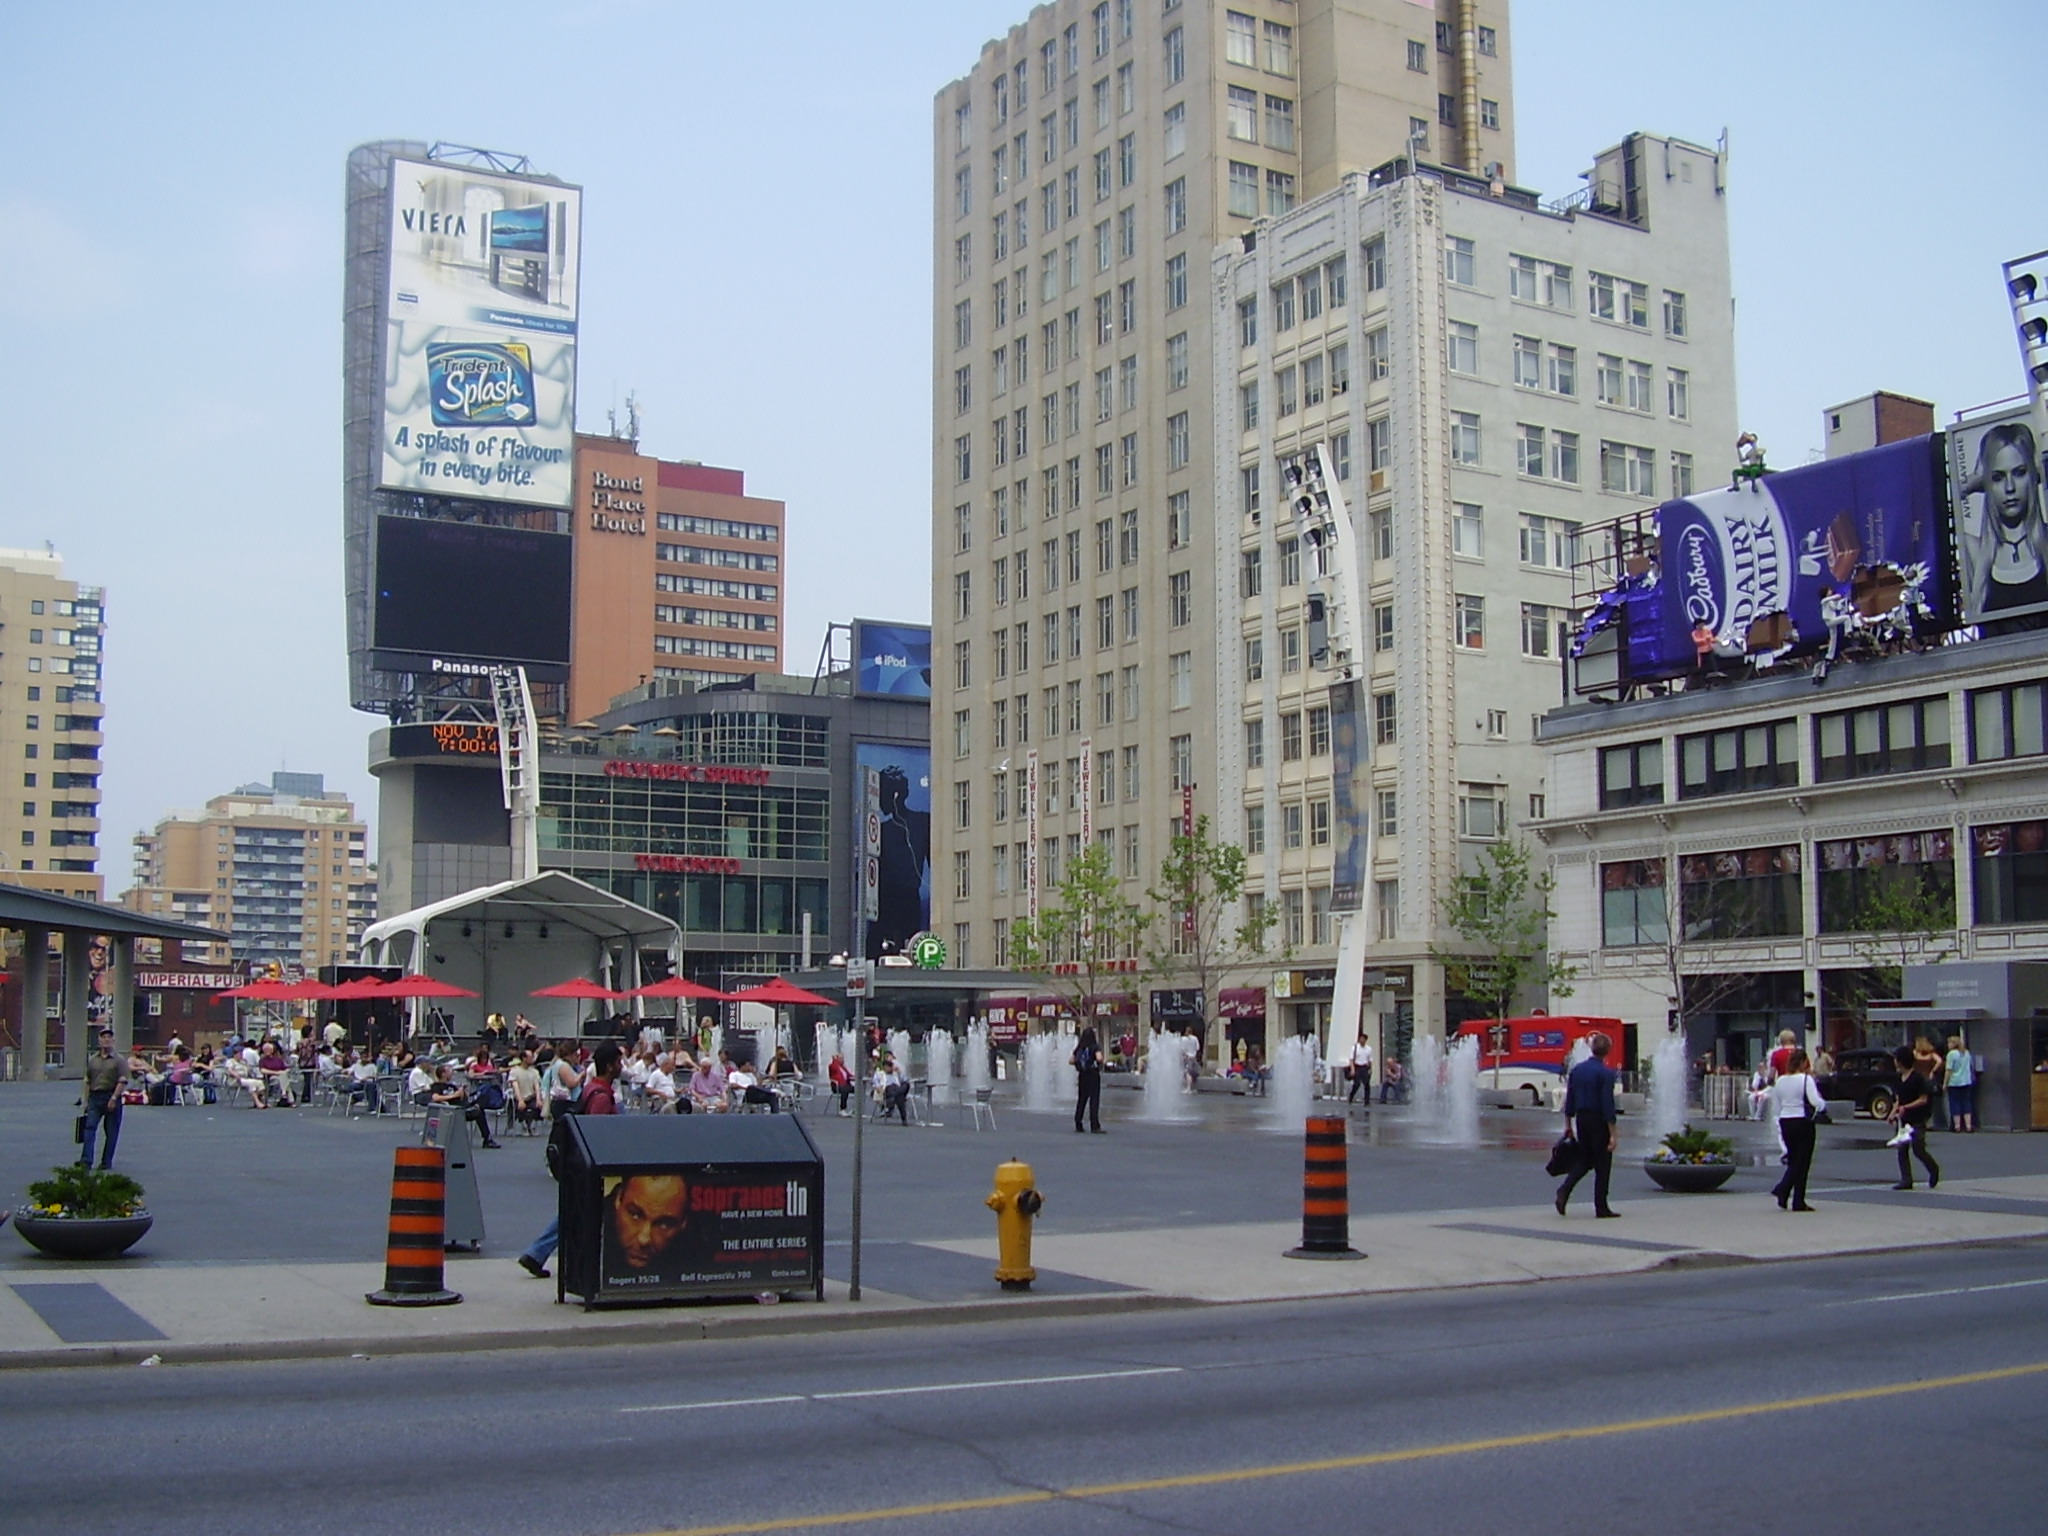 top drone companies with Beautiful Photos Of Yonge Dundas Square In Toronto on 95 Buy Key Steam Call Of Duty Black Ops Ii also Beautiful Photos Of Yonge Dundas Square In Toronto together with 30 Fantastic Photos Of Athabasca Sand Dunes Alberta together with Amazon Is Struggling To Find Its Place China 2017 8 additionally Best Drones Under 300 Review.